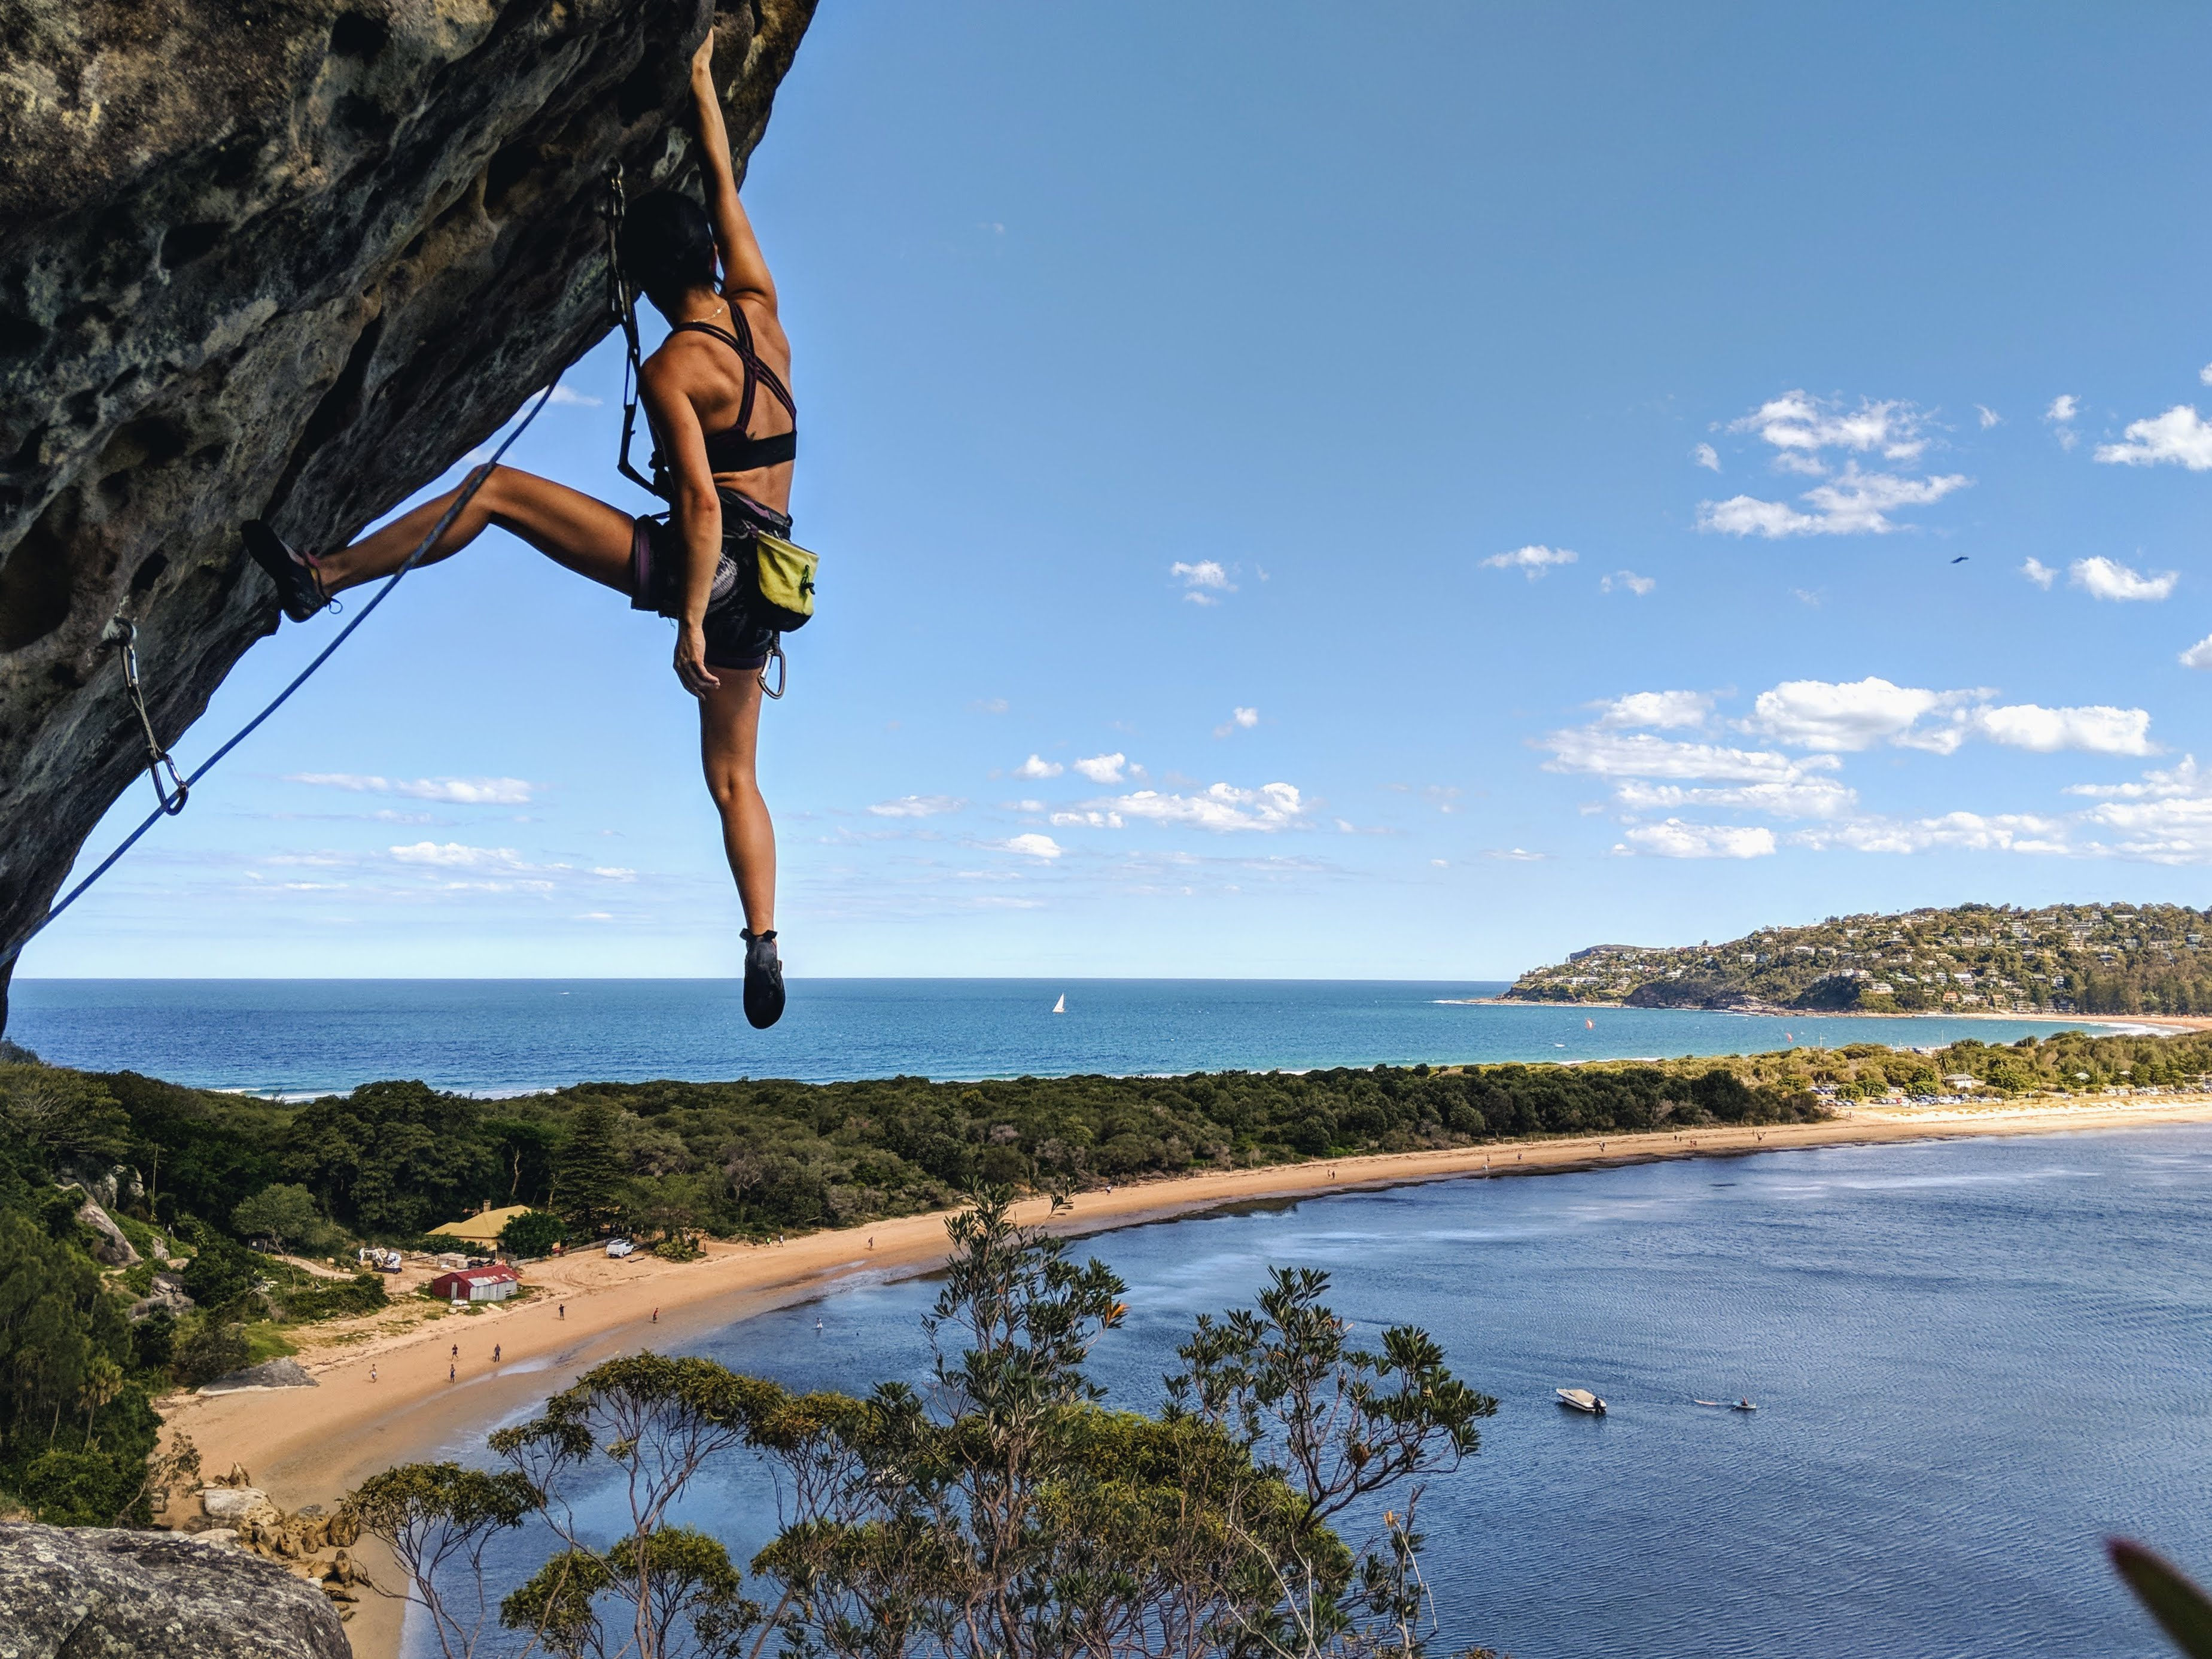 young woman rock climbing on cliffside hanging on by one hand tropical location